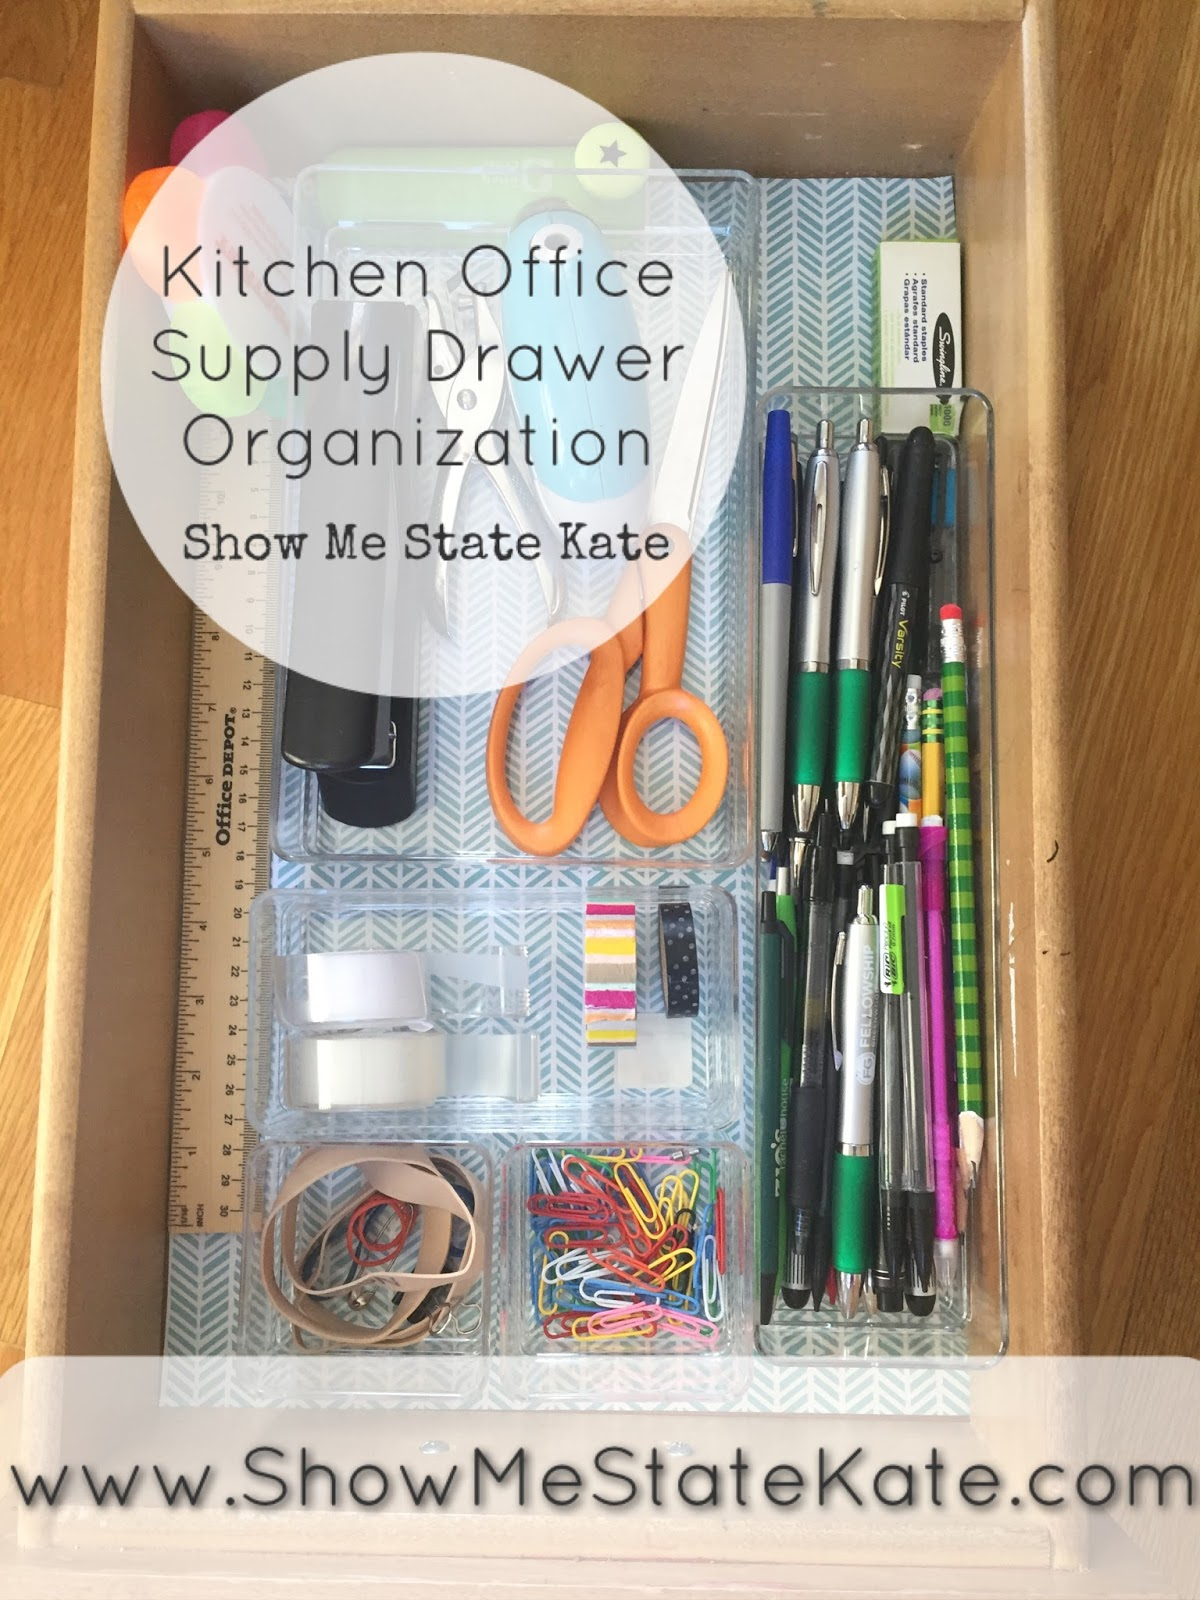 Kitchen Office Organization Show Me State Kate Mission Organizationkitchen Office Supply